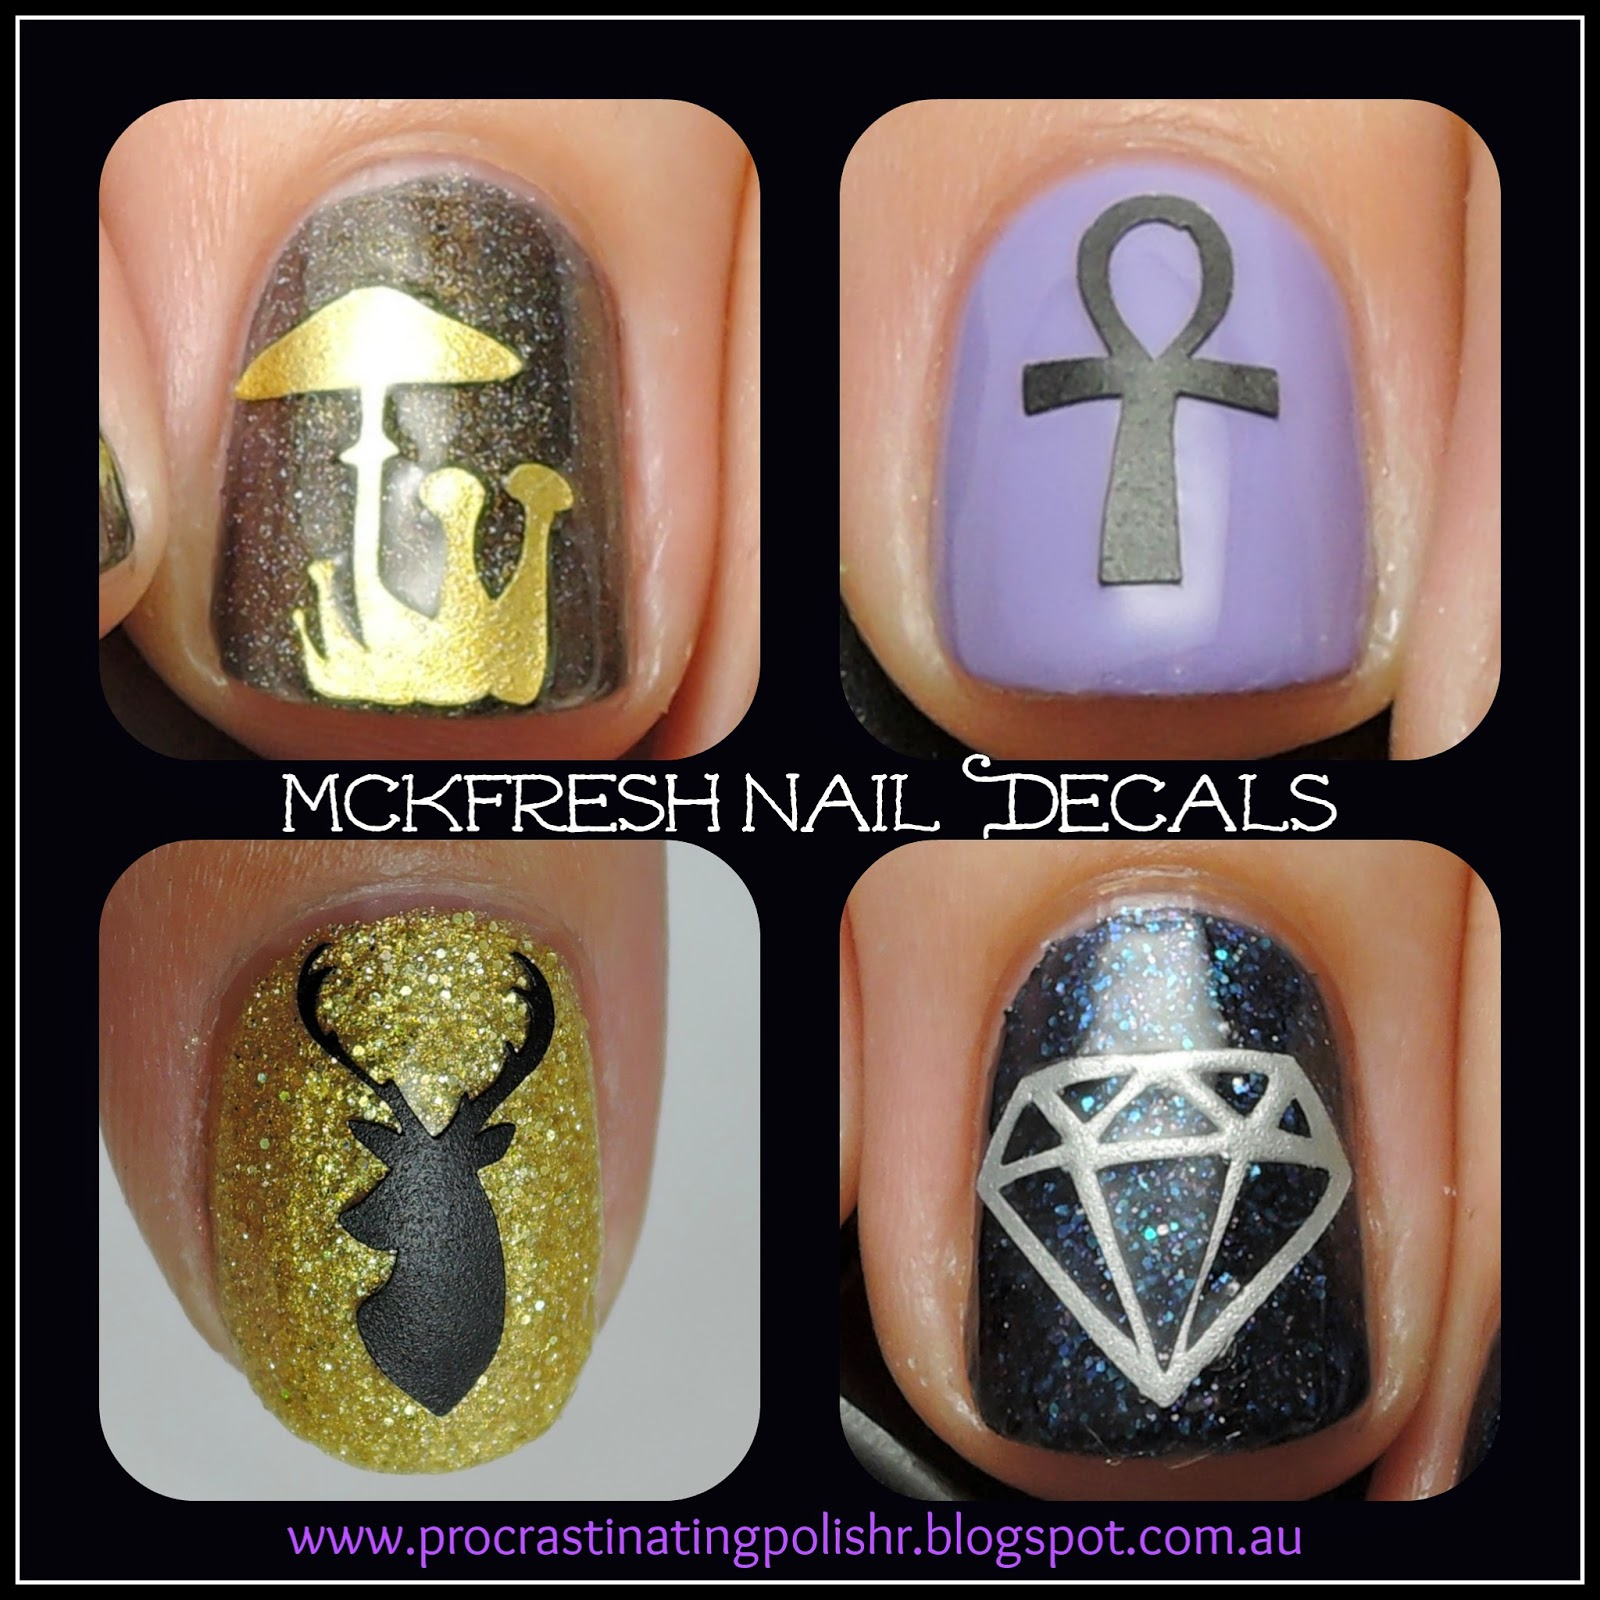 Mckfresh vinyl nail decals Ankh Elk Diamond Mushrooms